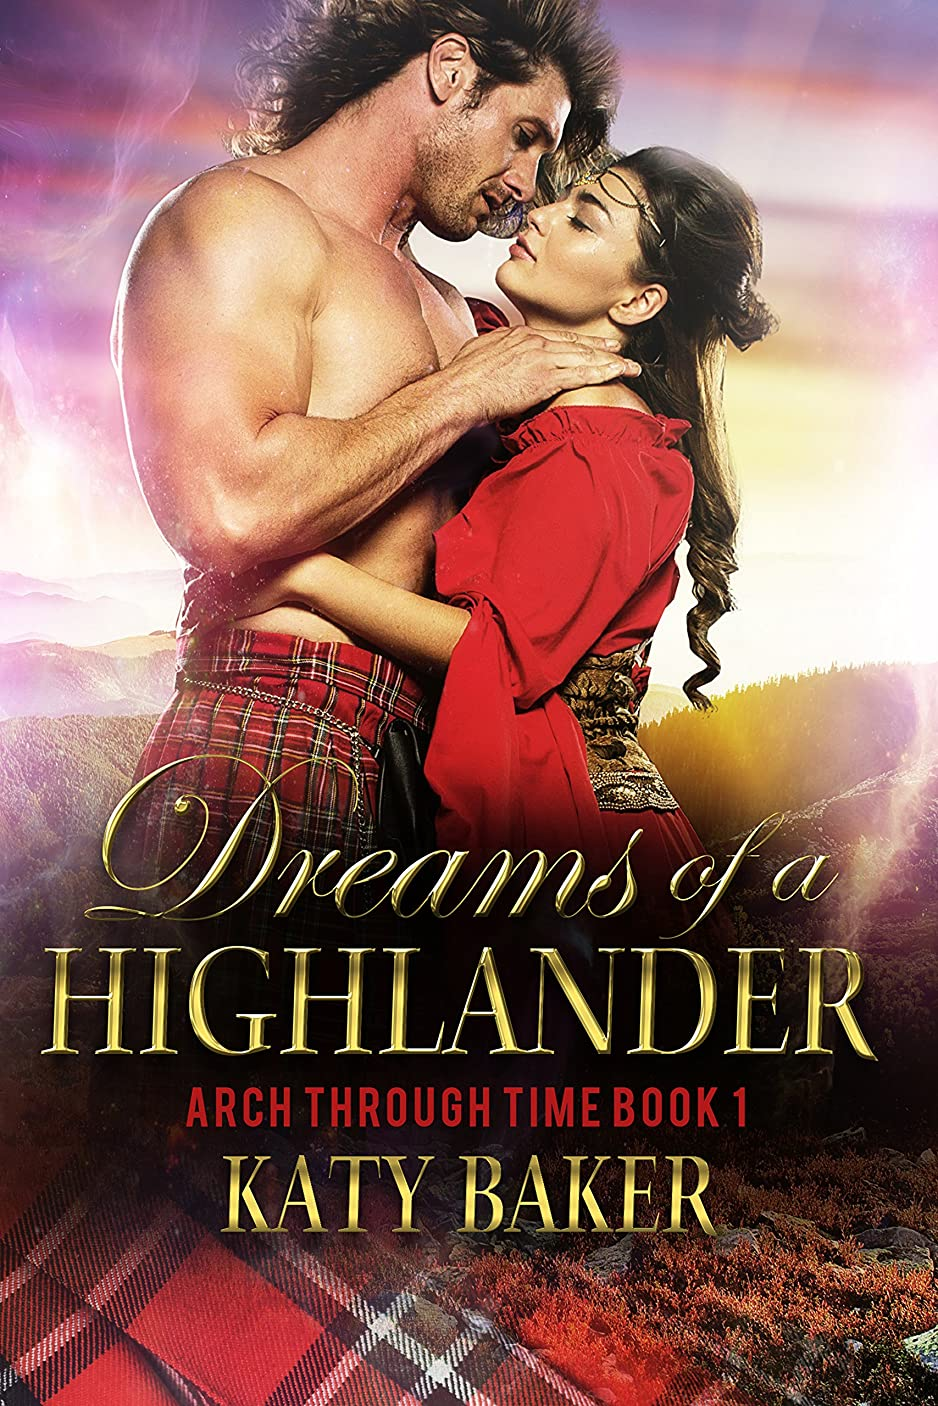 ステッチ郵便物接続されたDreams of a Highlander: A Scottish time travel romance (Arch Through Time Book 1) (English Edition)